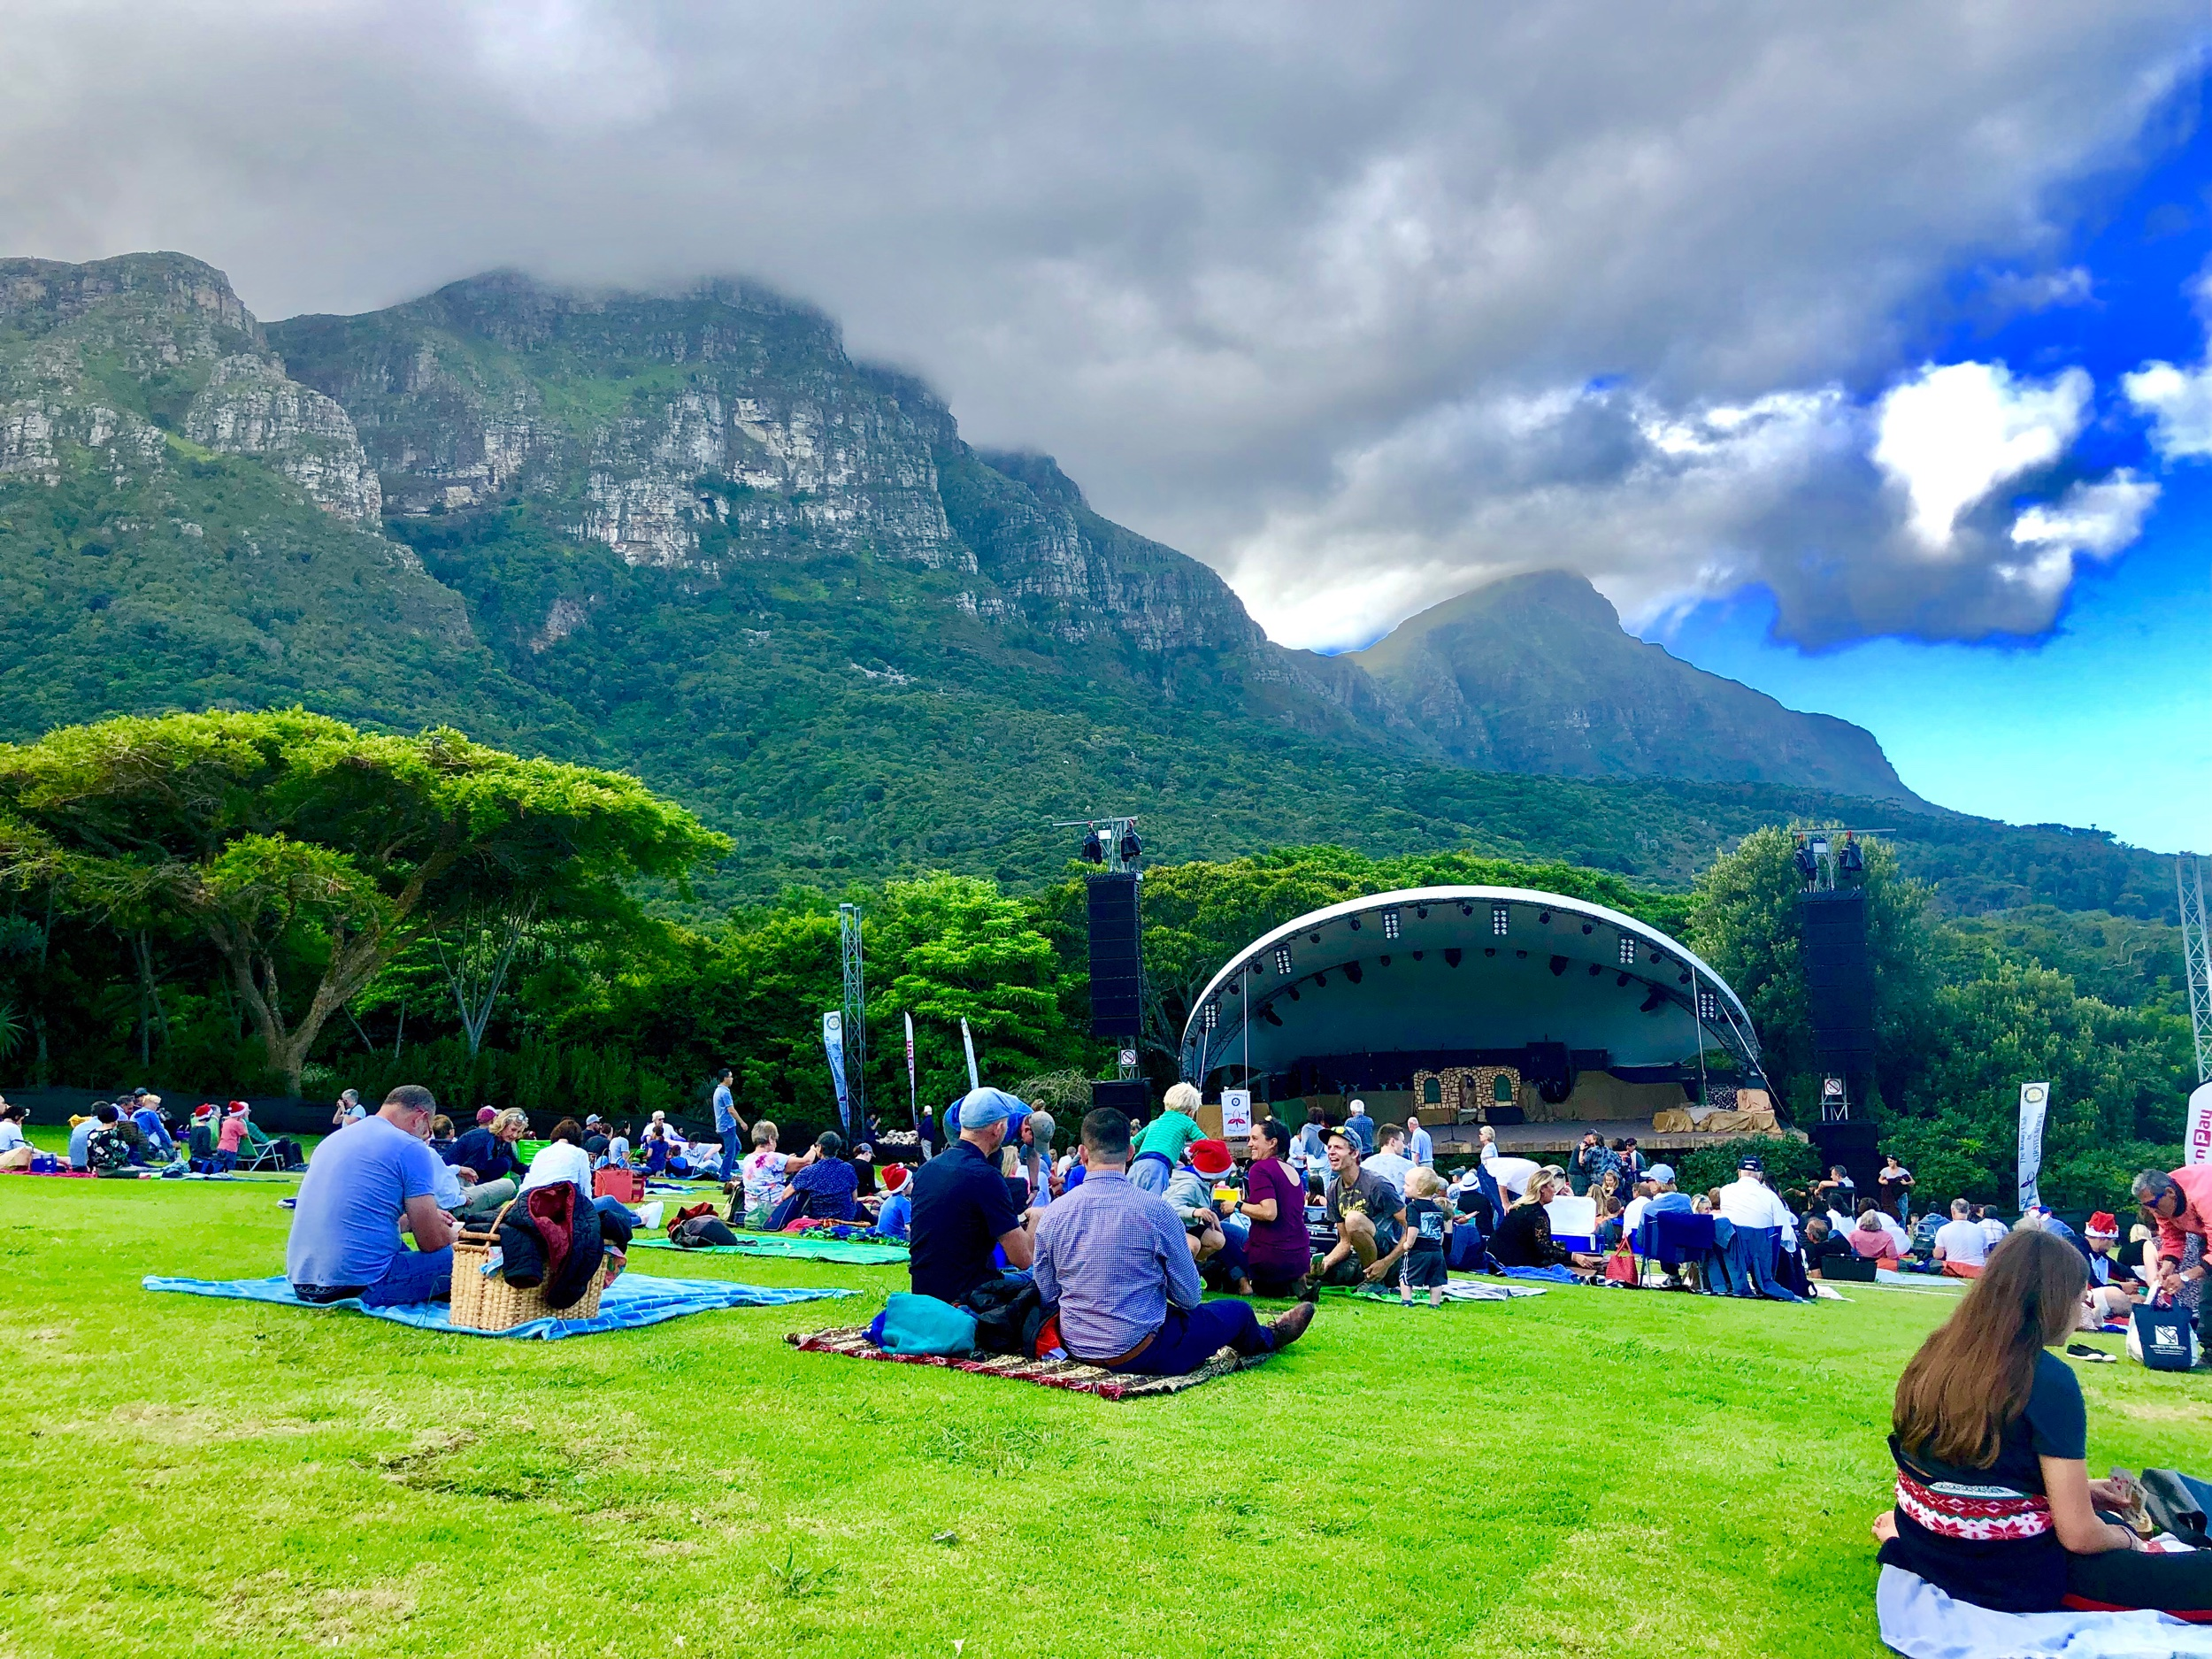 Caroling at Kirstenbosch in Cape Town, South Africa